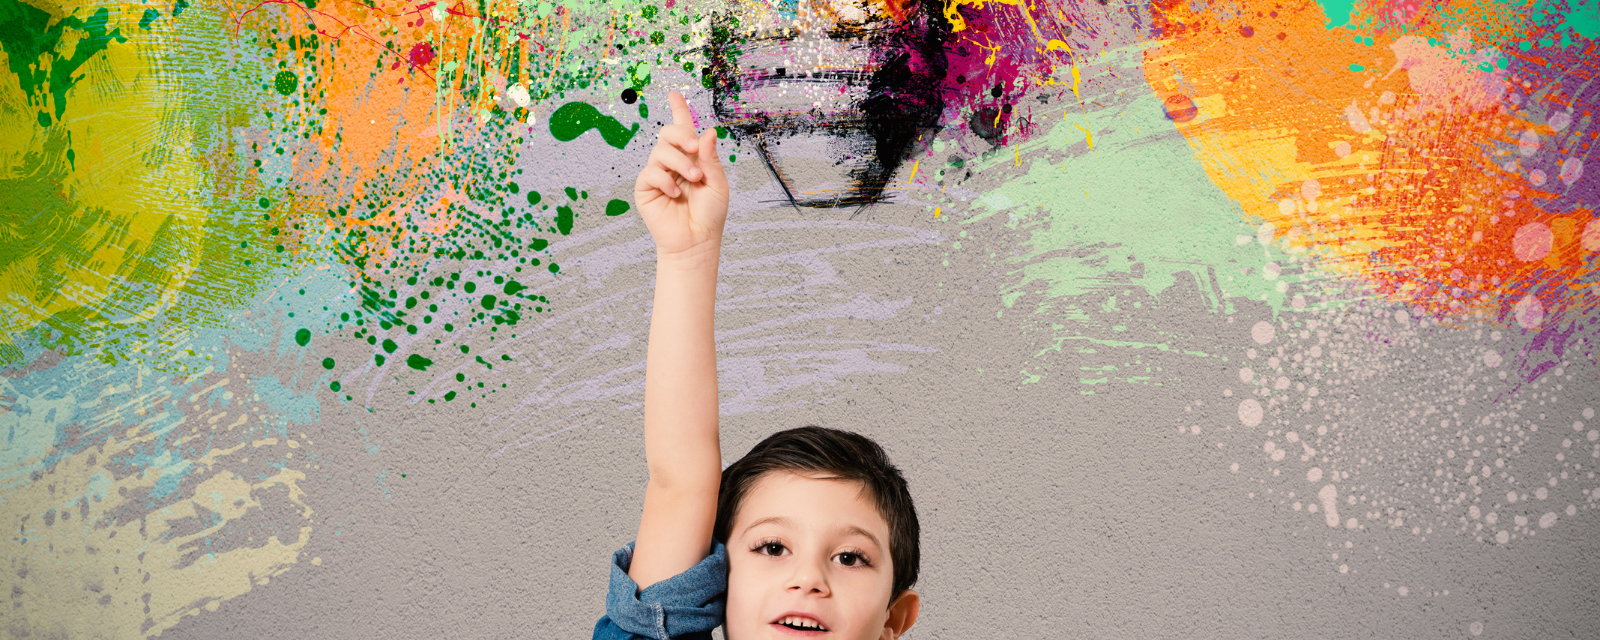 young boy pointing to colorful explosion above him